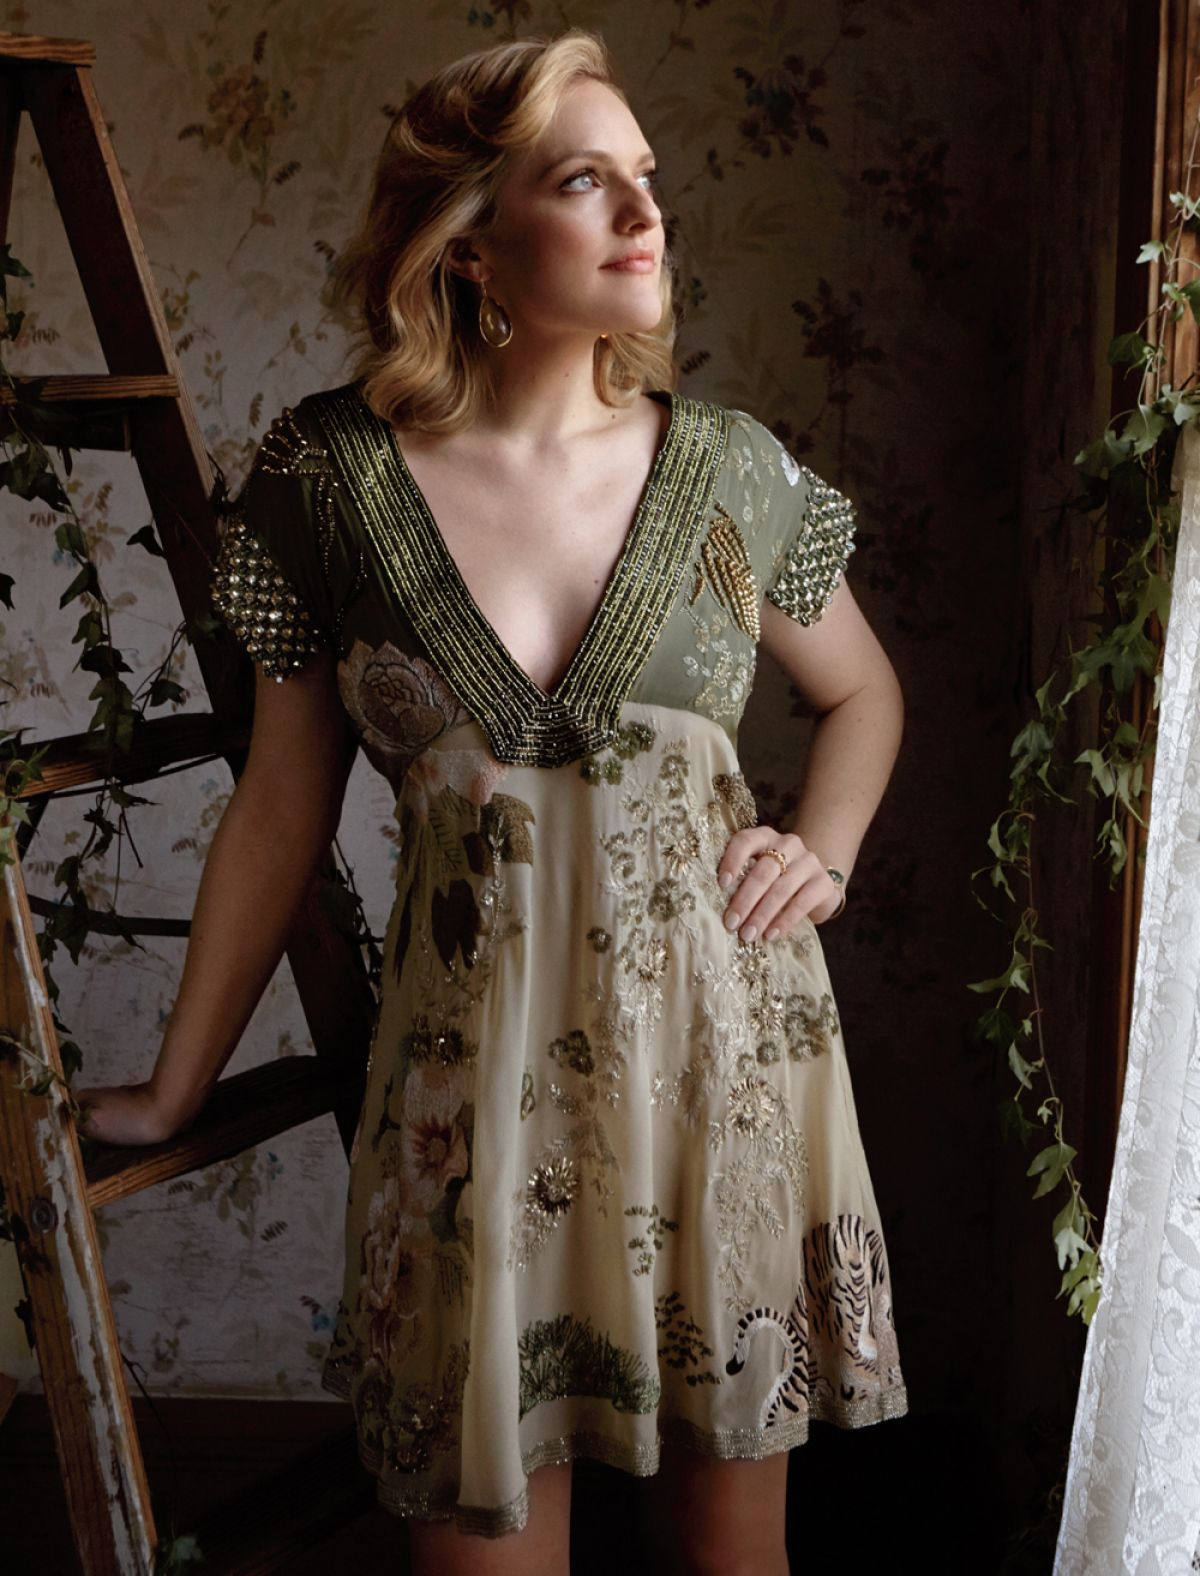 ELISABETH MOSS - Los Angeles Magazine Photoshoot